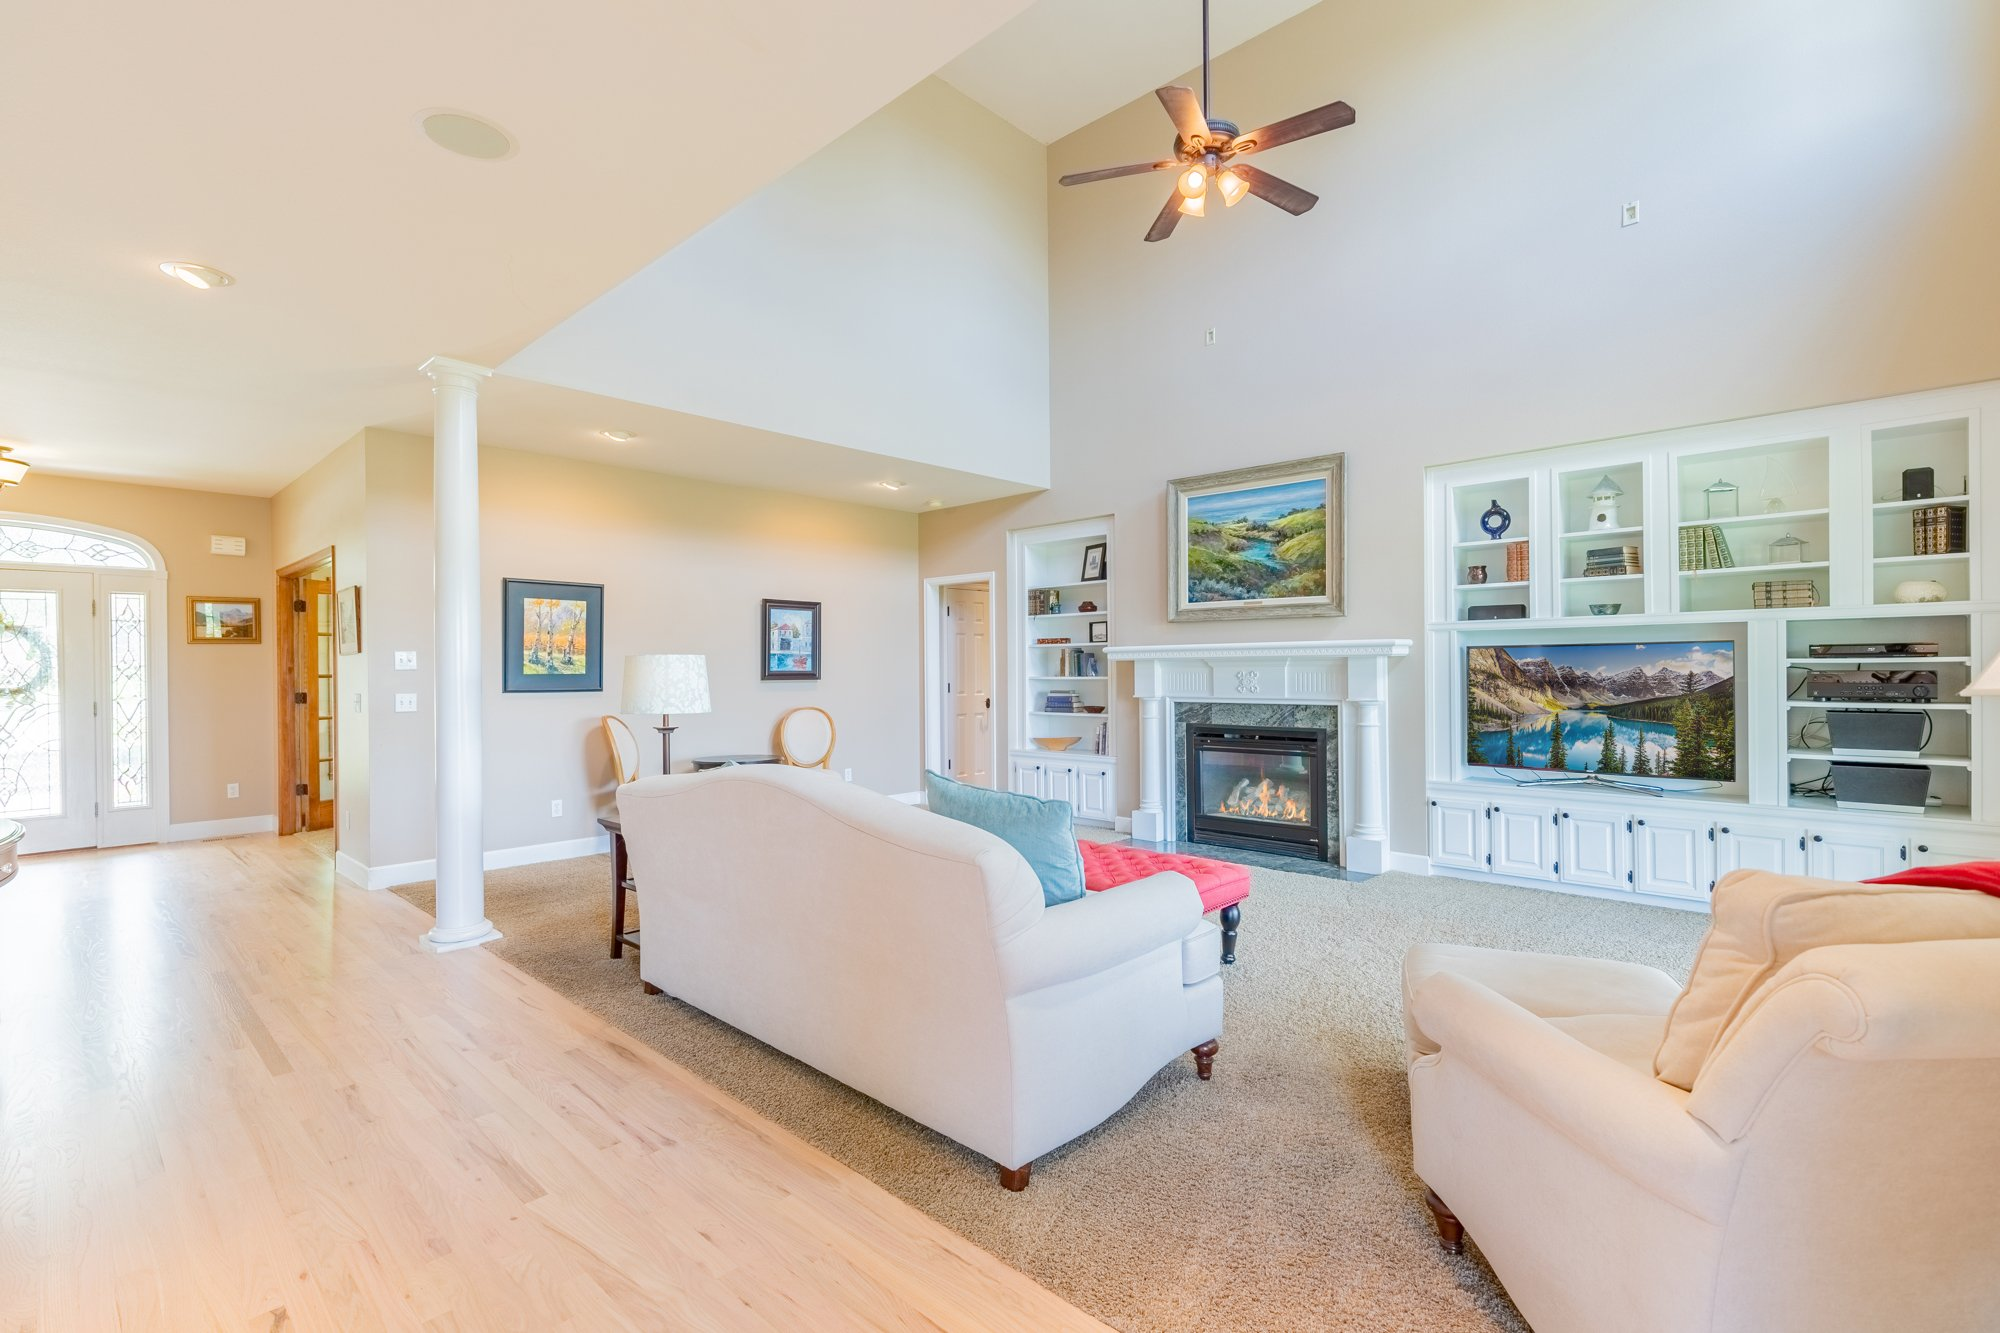 Living Room with Ceiling Fan - 2049 Brook Way Montrose, Co 81403 - Atha Team Luxury Real Estate